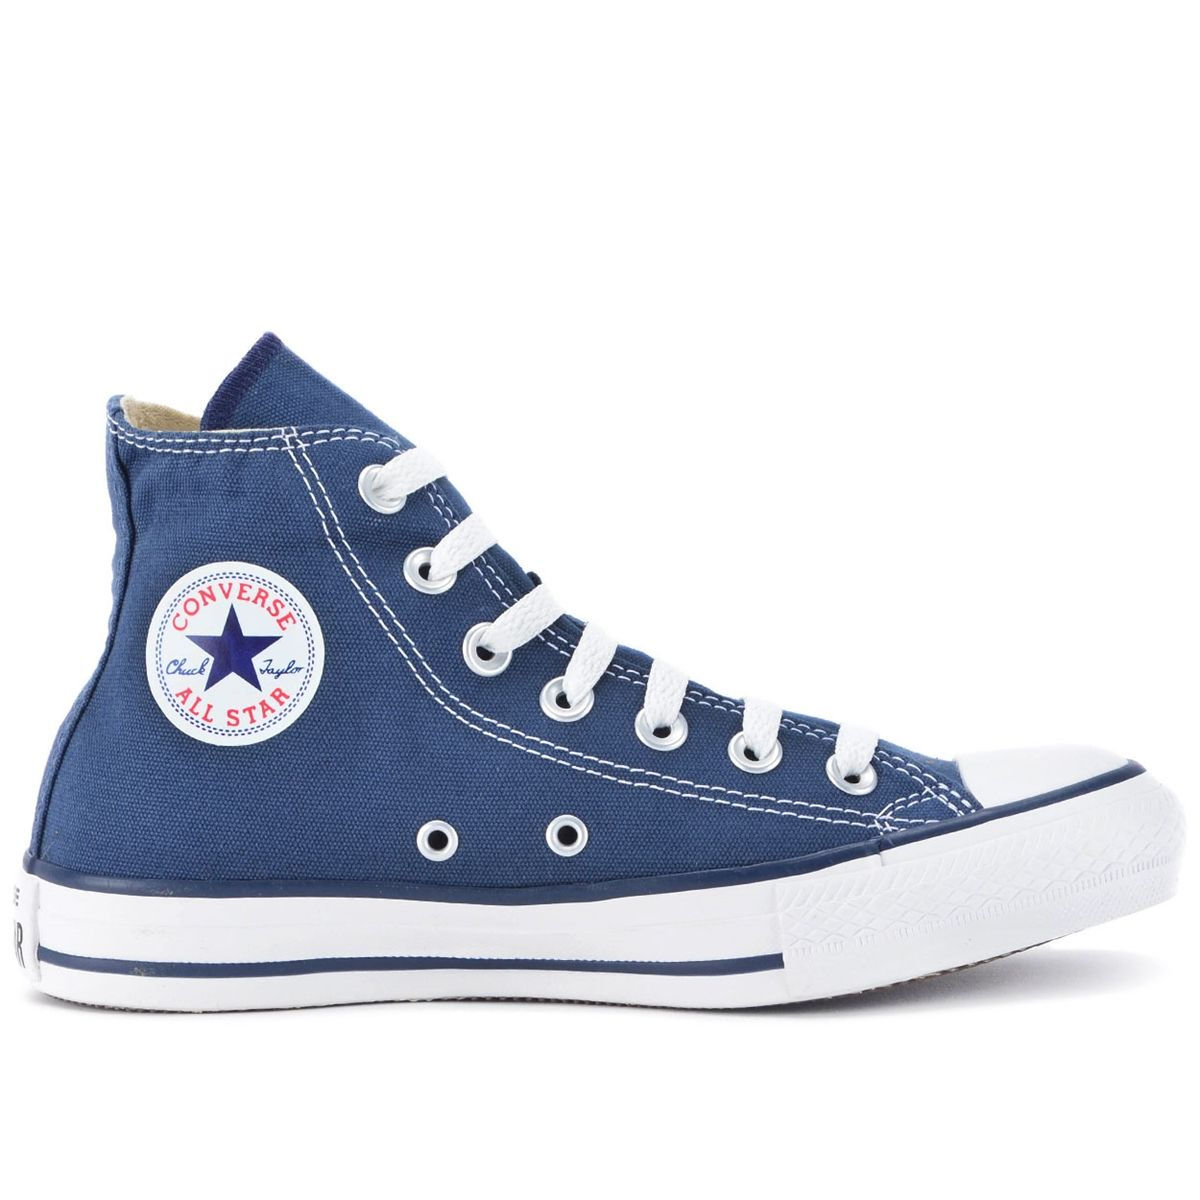 32de1644e9bcff wholesale converse shoes available at  http   www.eviro.org email us for  price list and catalog.